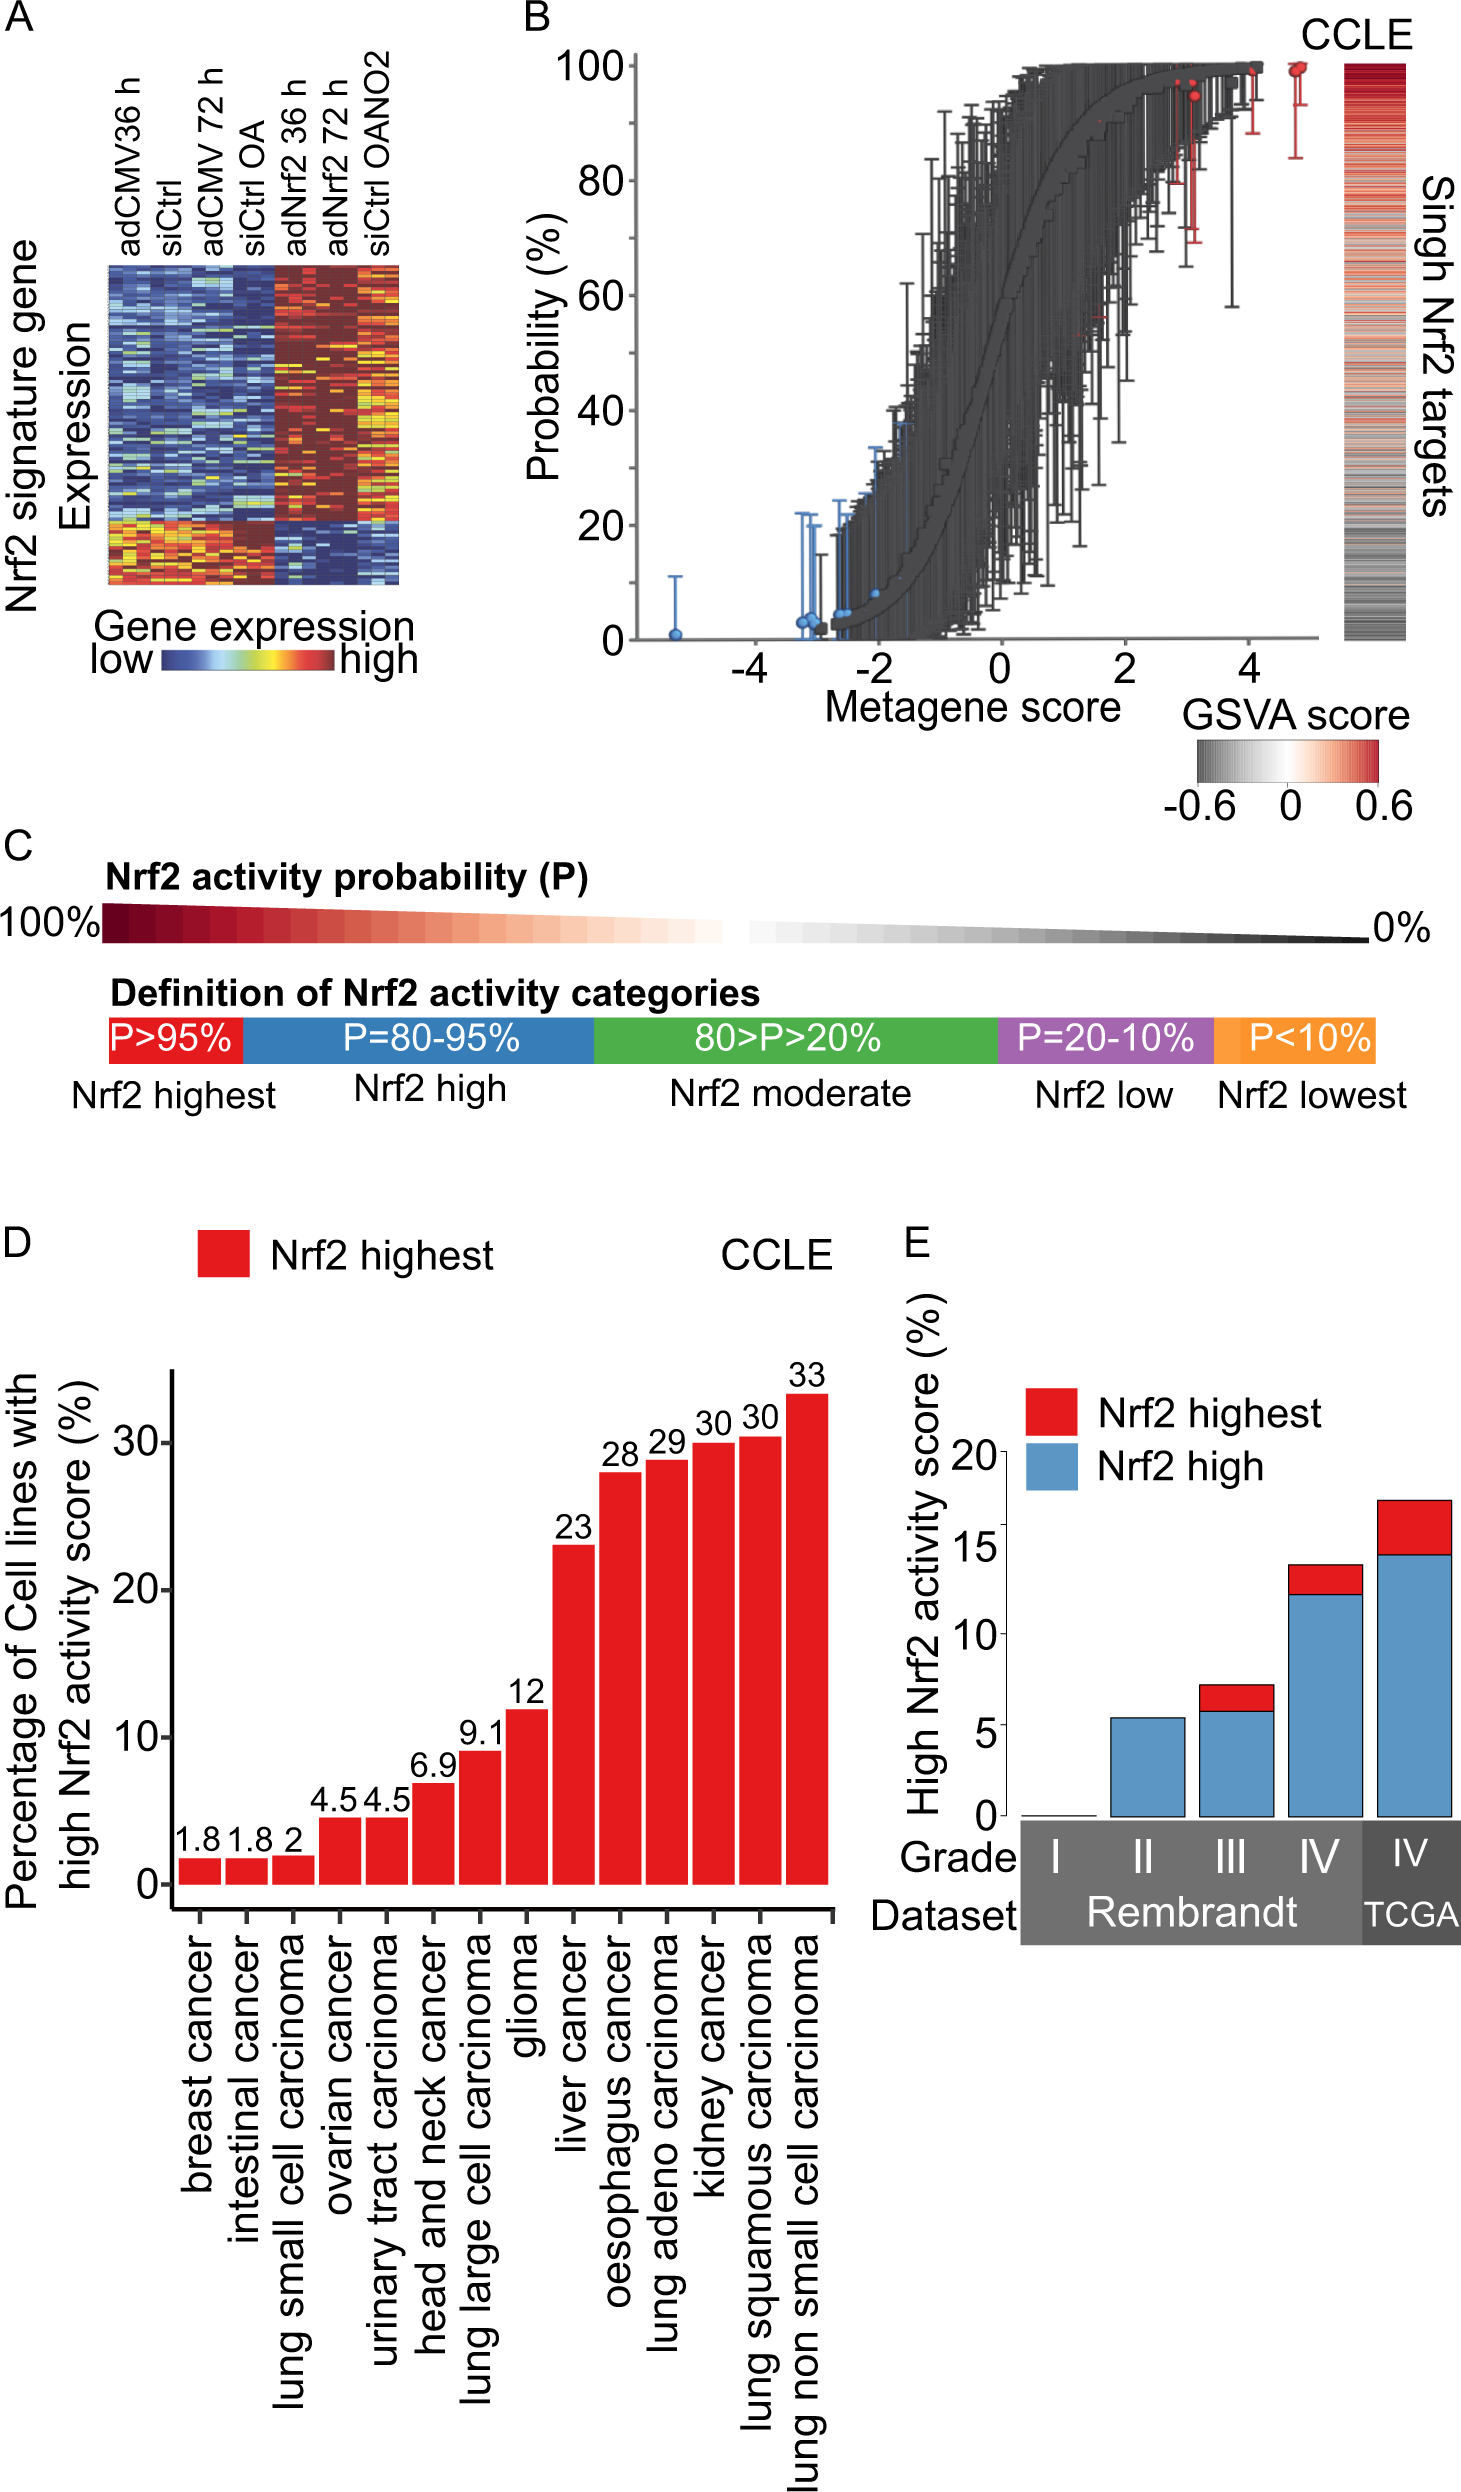 Nrf2 and SQSTM1 /p62 jointly contribute to mesenchymal transition and